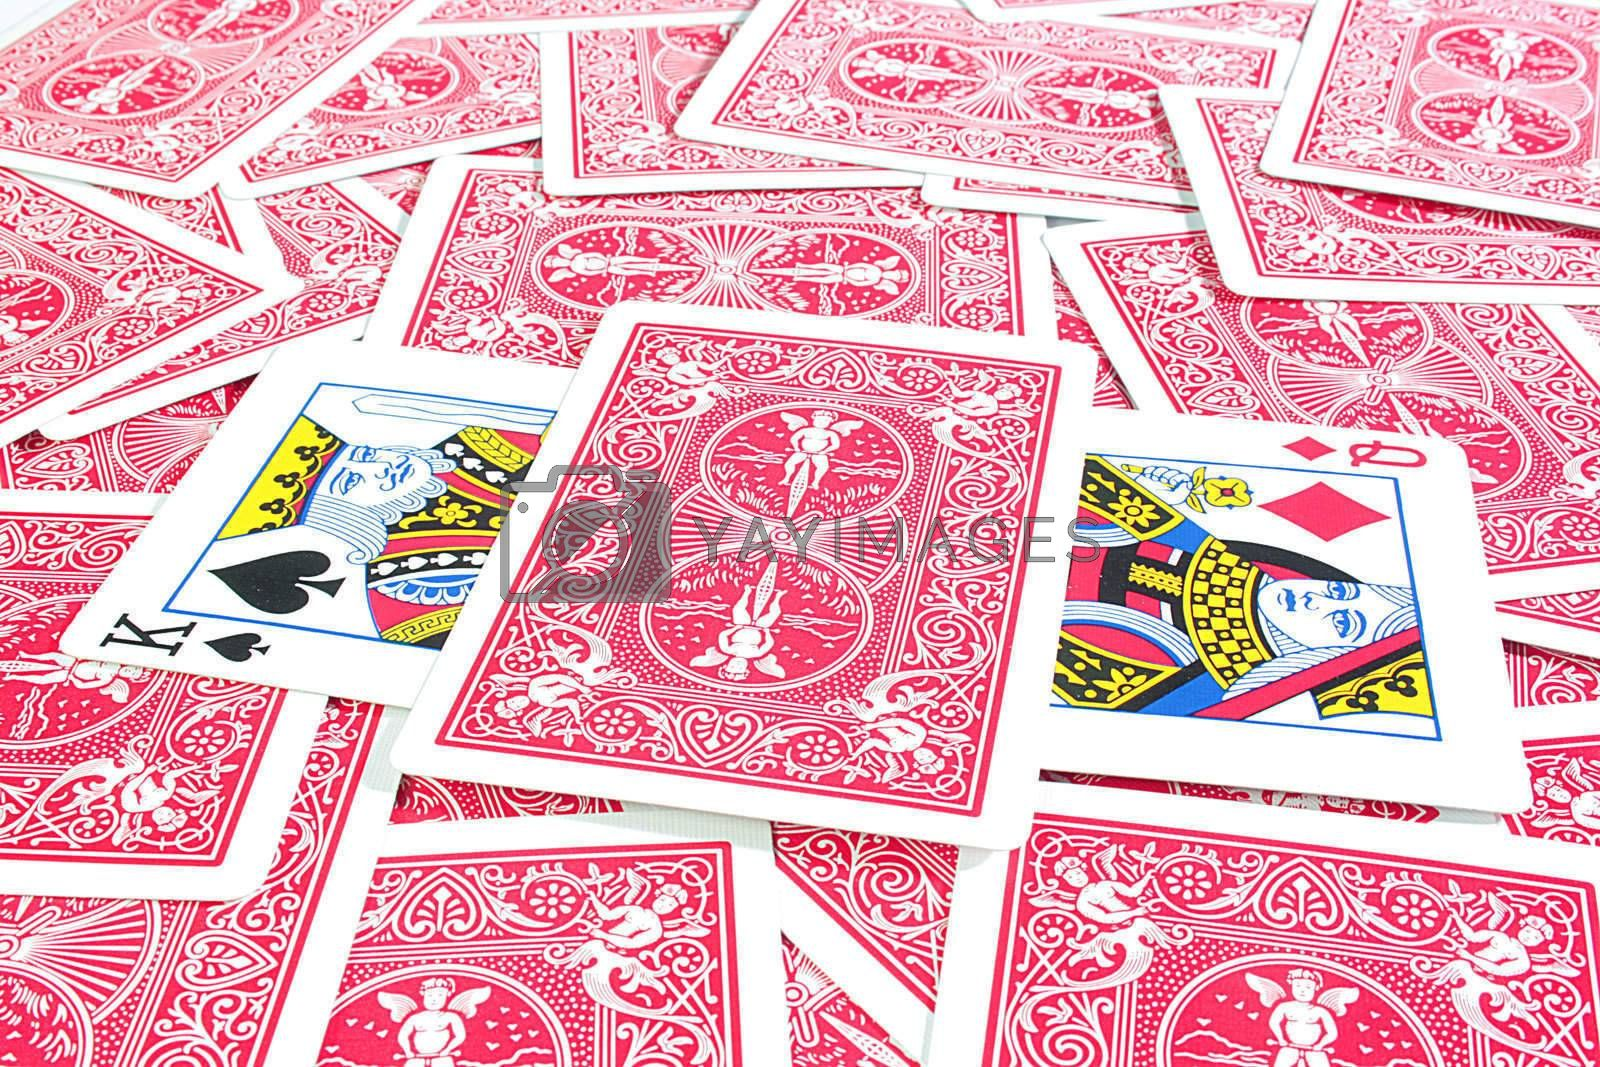 Underside playing cards with dark red color.